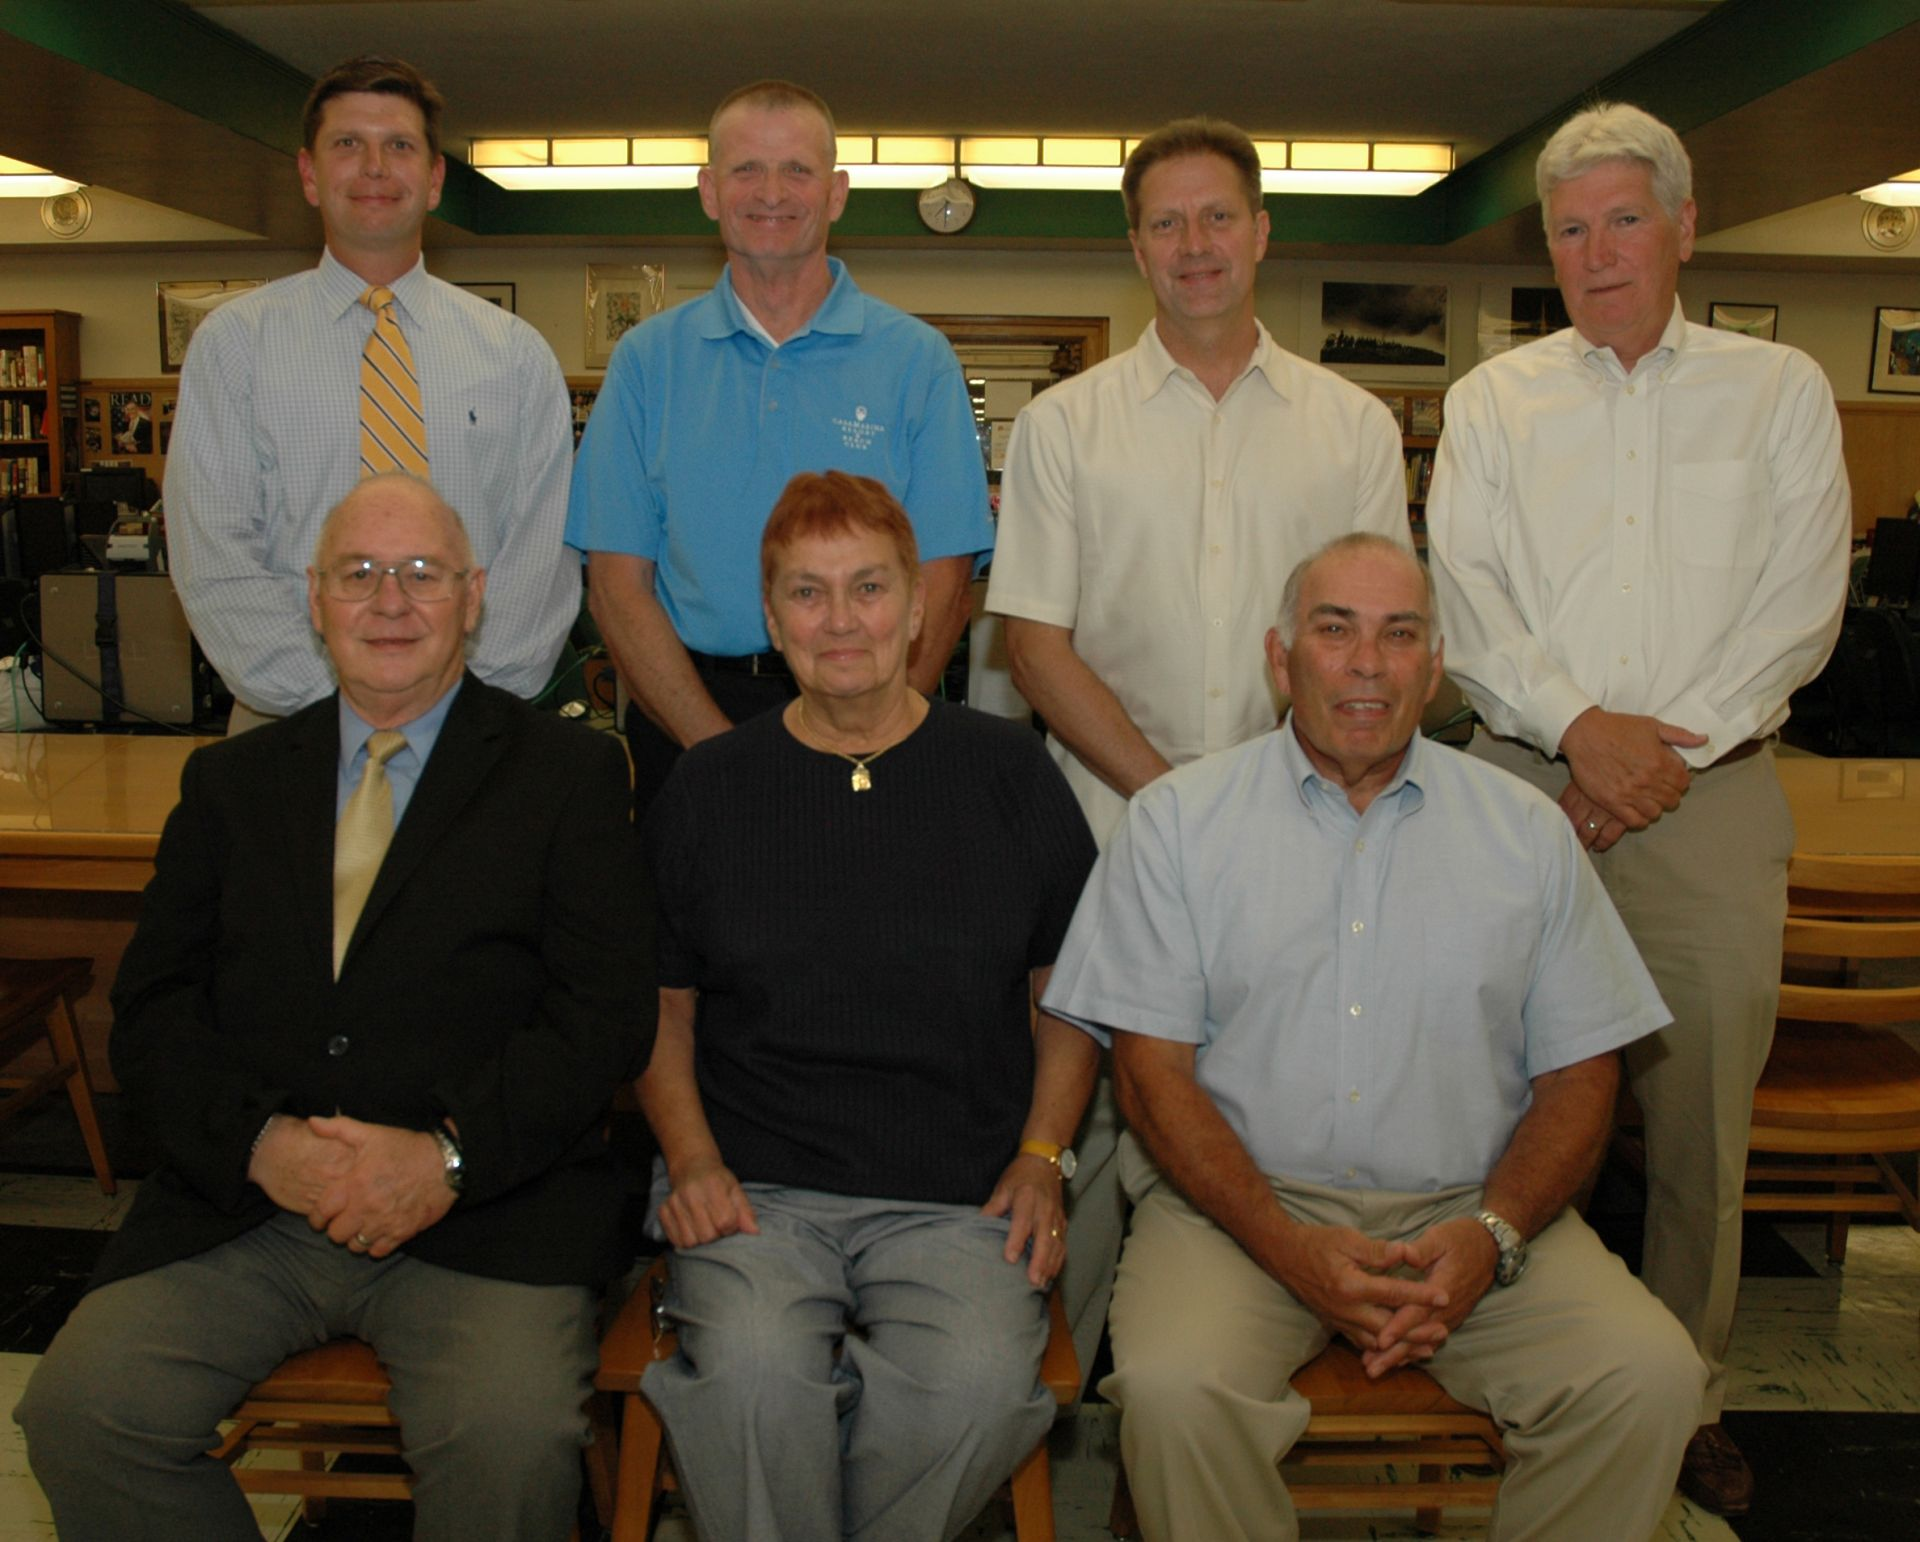 2010 Honorees Pictured are (seated): John Grussler, Barb Major, representing the '77 Girls Basketball Team and Gary Dambro (standing): Scott Kmiec, Michael Drulis, Dave Ungrady and Gene Hayman, representing the '66 - '67 Boys Soccer Team